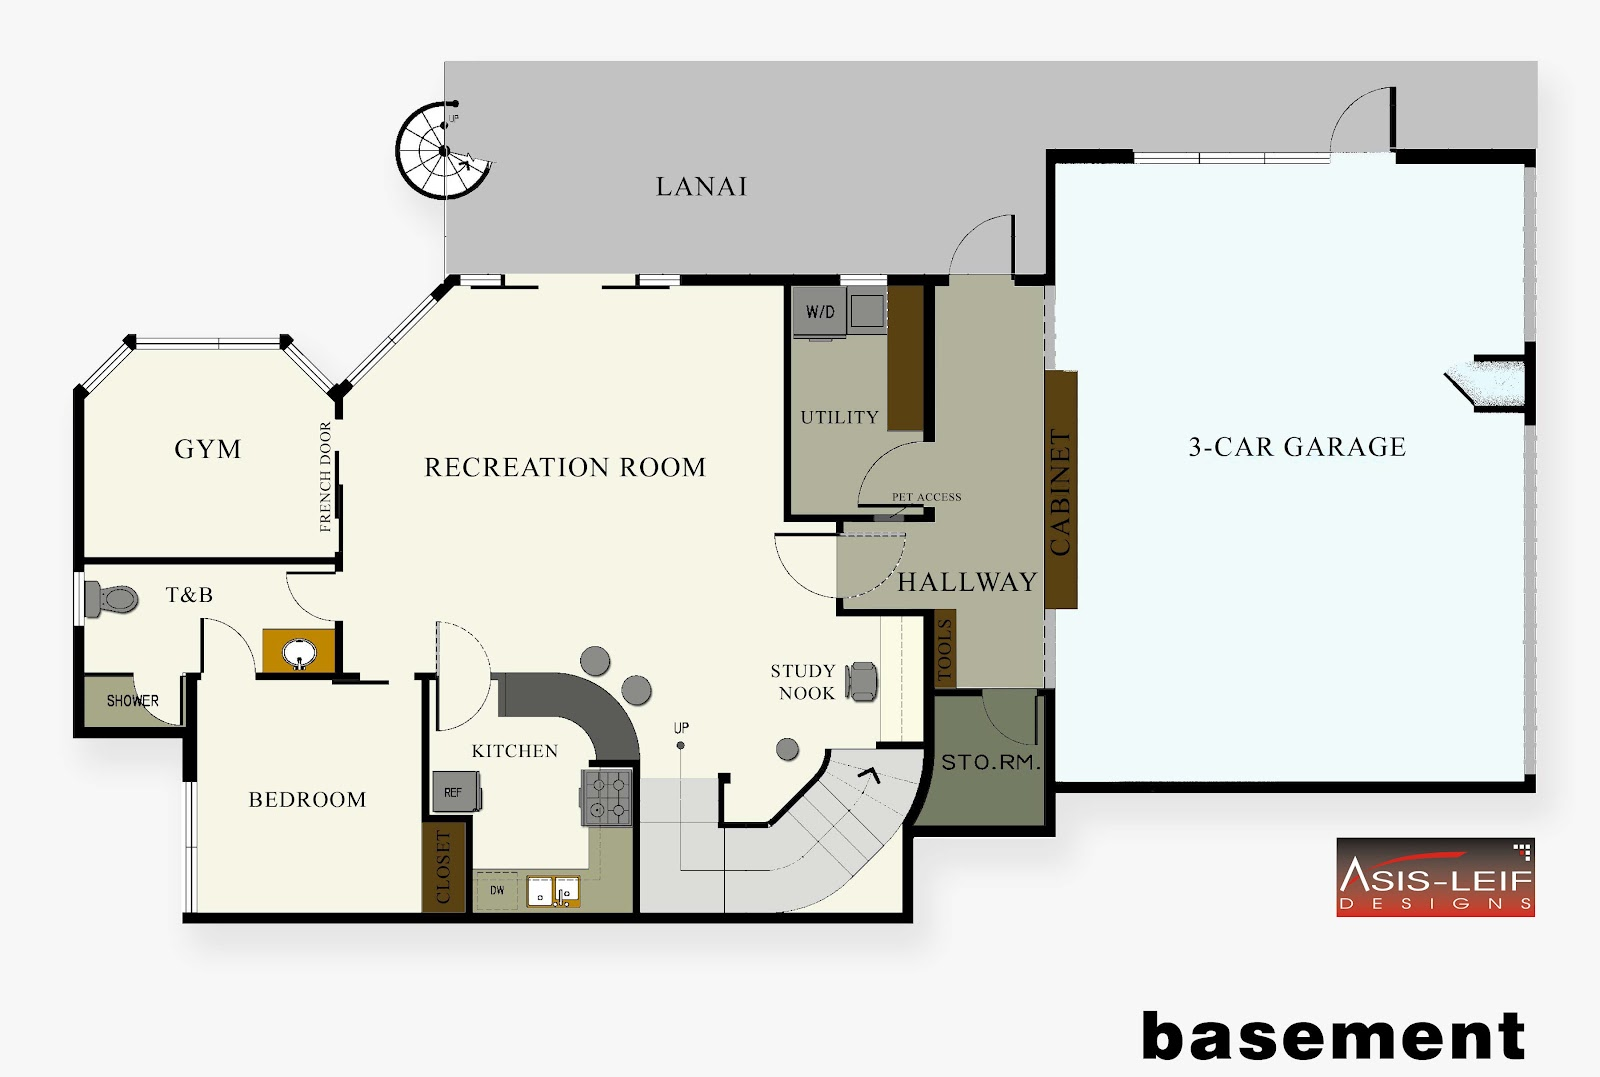 Basement floor plans ideas house plans 1849 for Modern house plans with basement